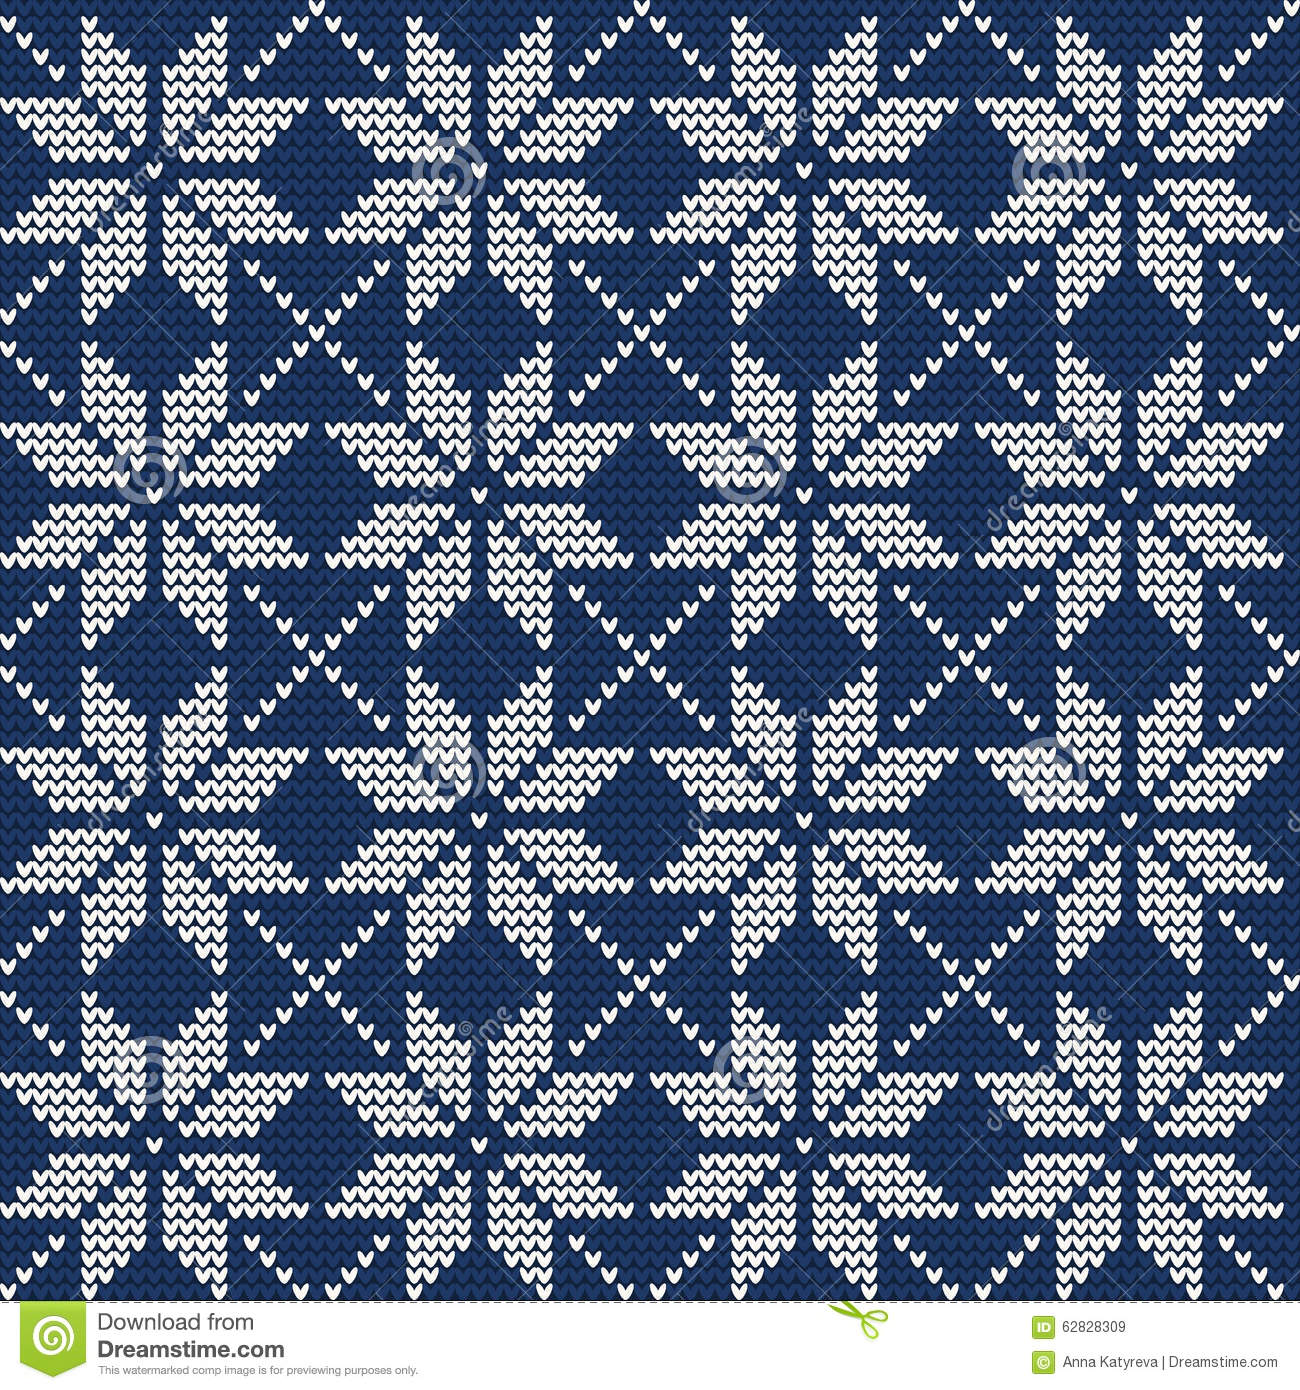 Christmas Ugly Sweater 1 Stock Vector - Image: 62828309